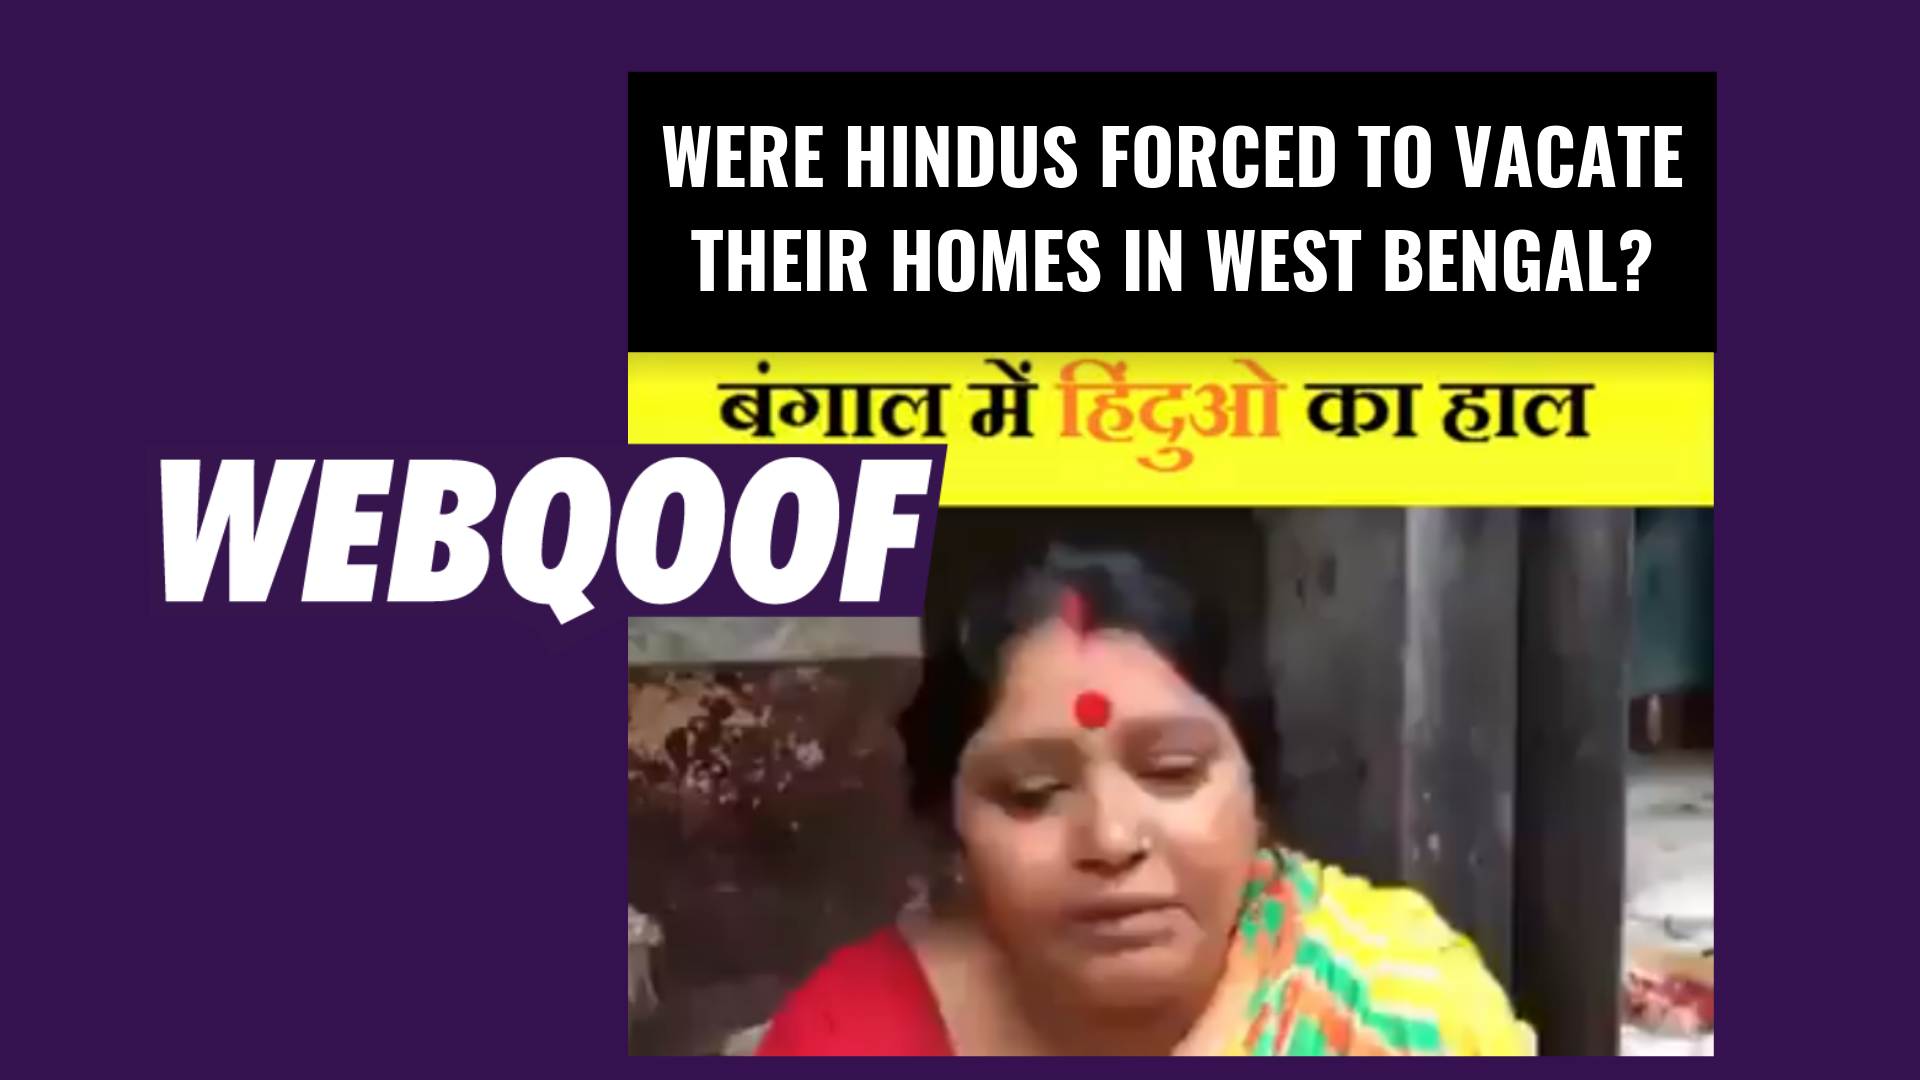 No, Bengali Hindus Aren't Fleeing Their Homes – It's an Old Video